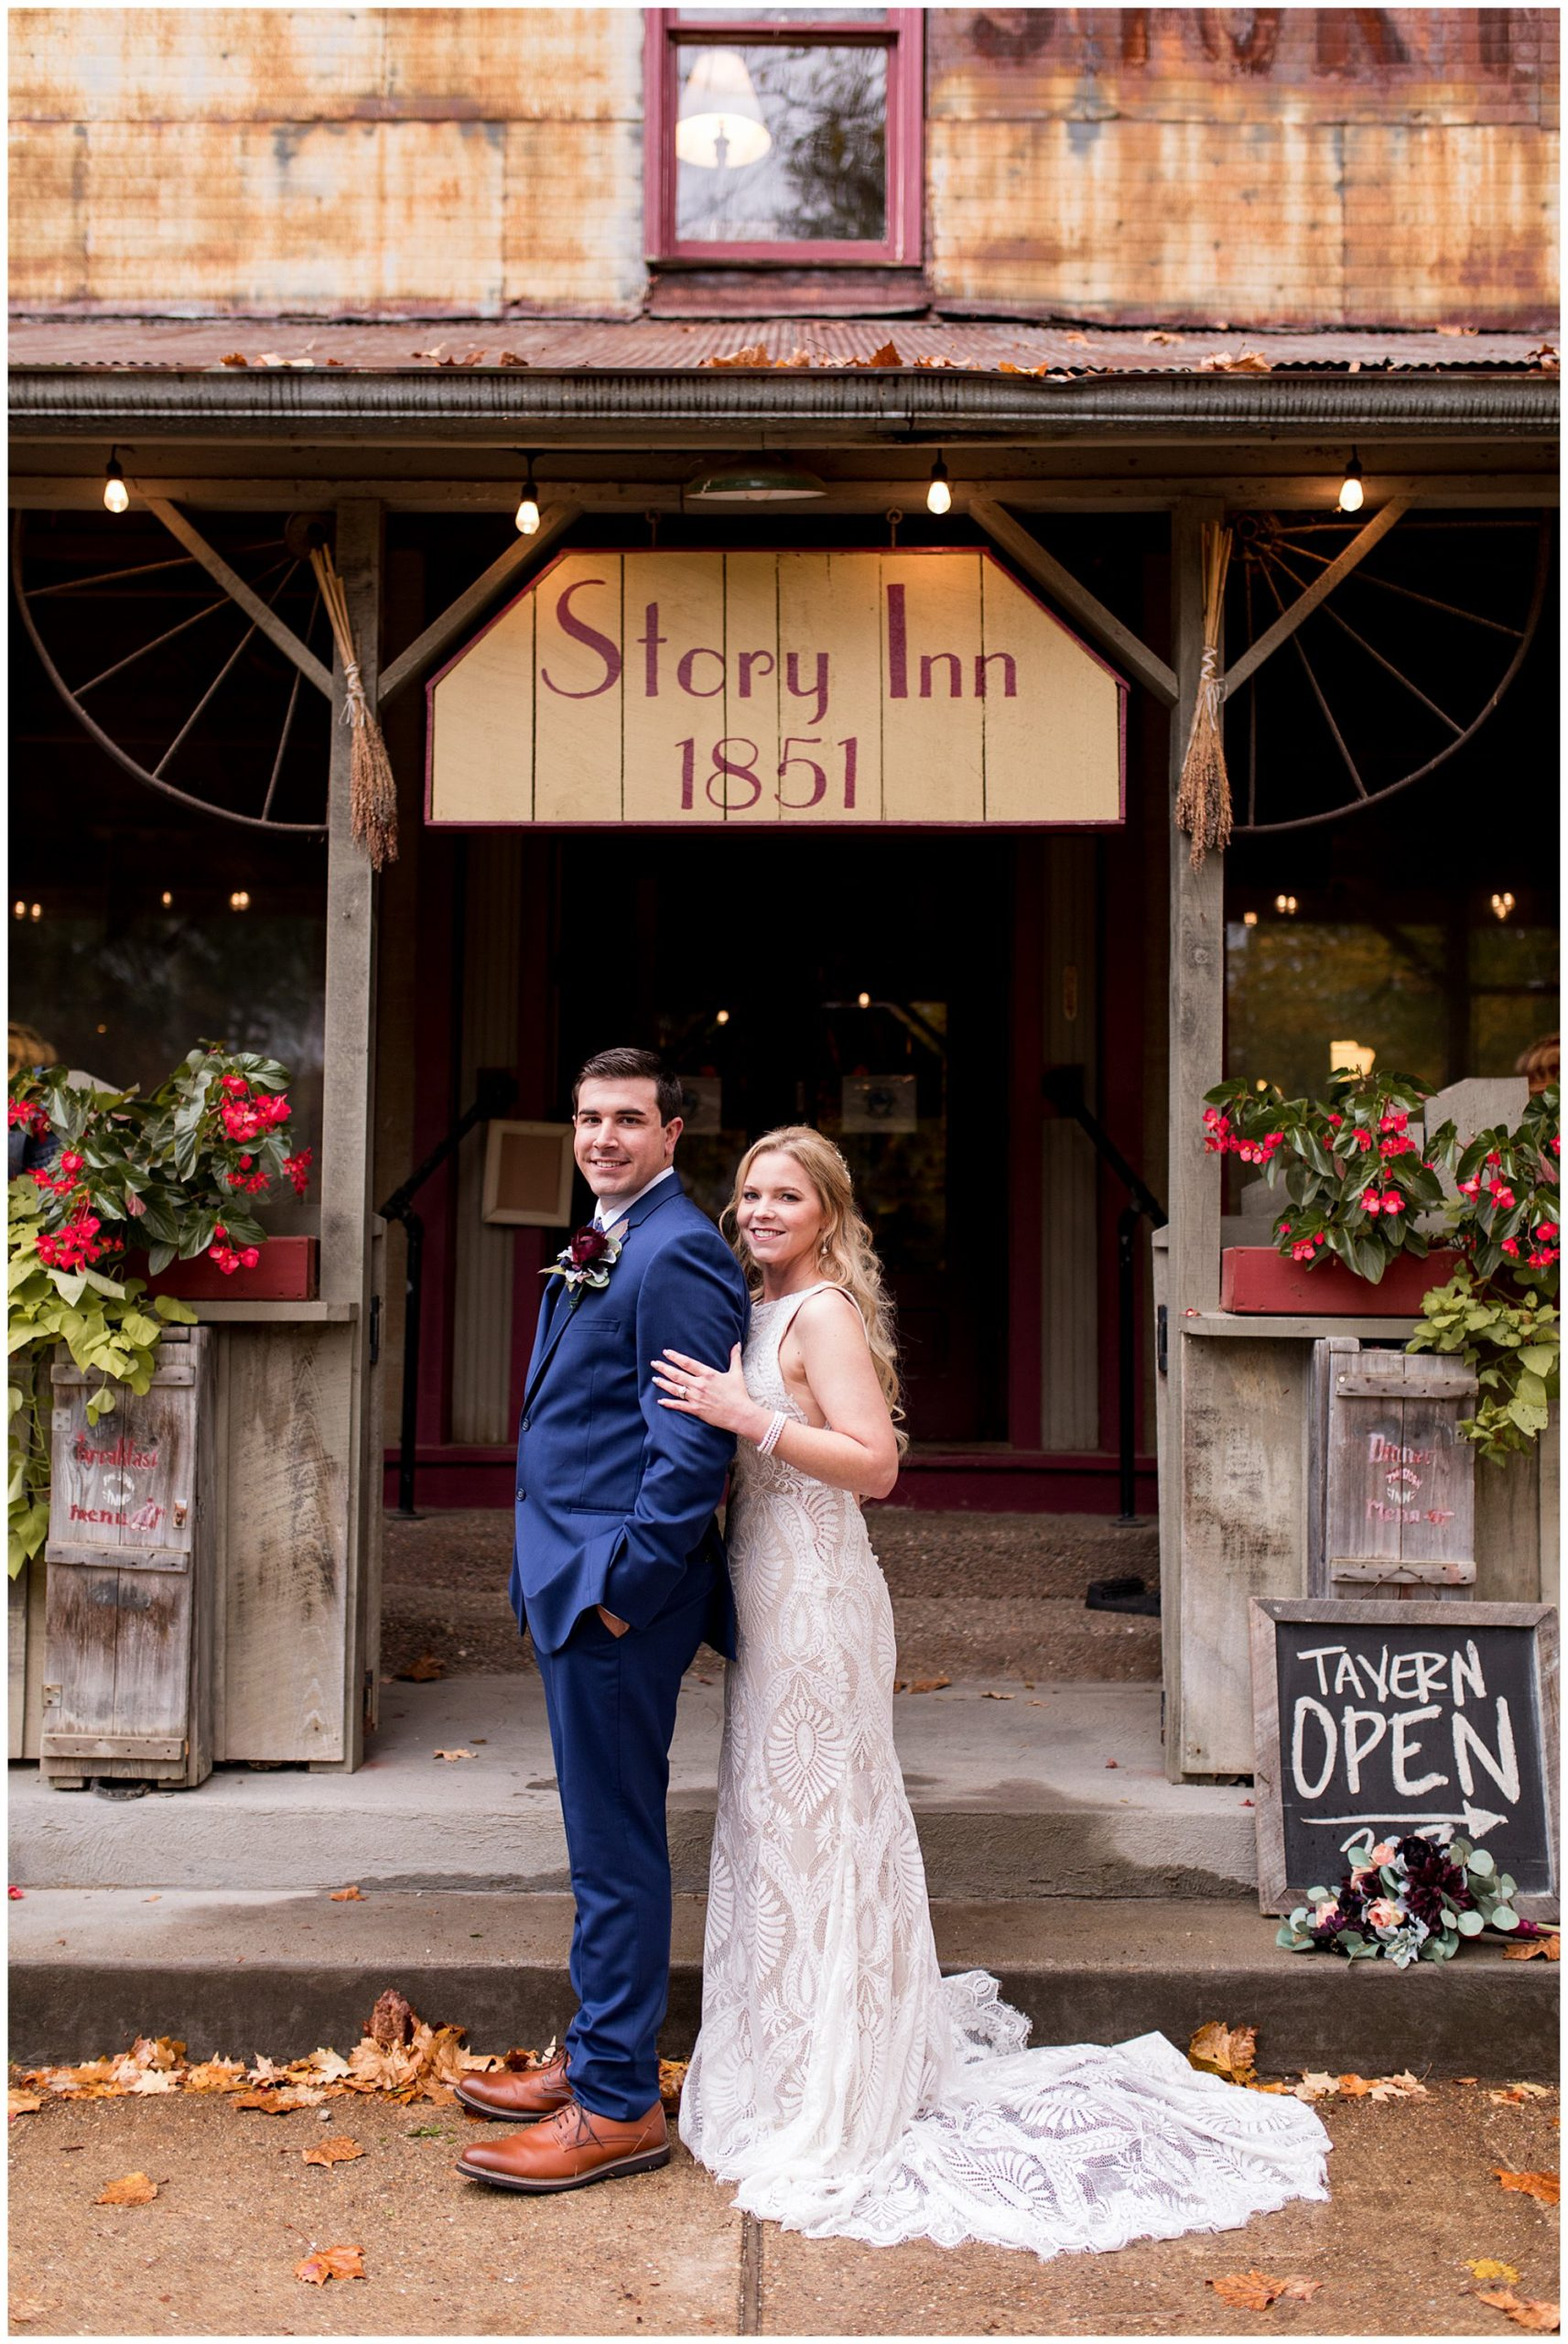 Story Inn elopement in Brown County